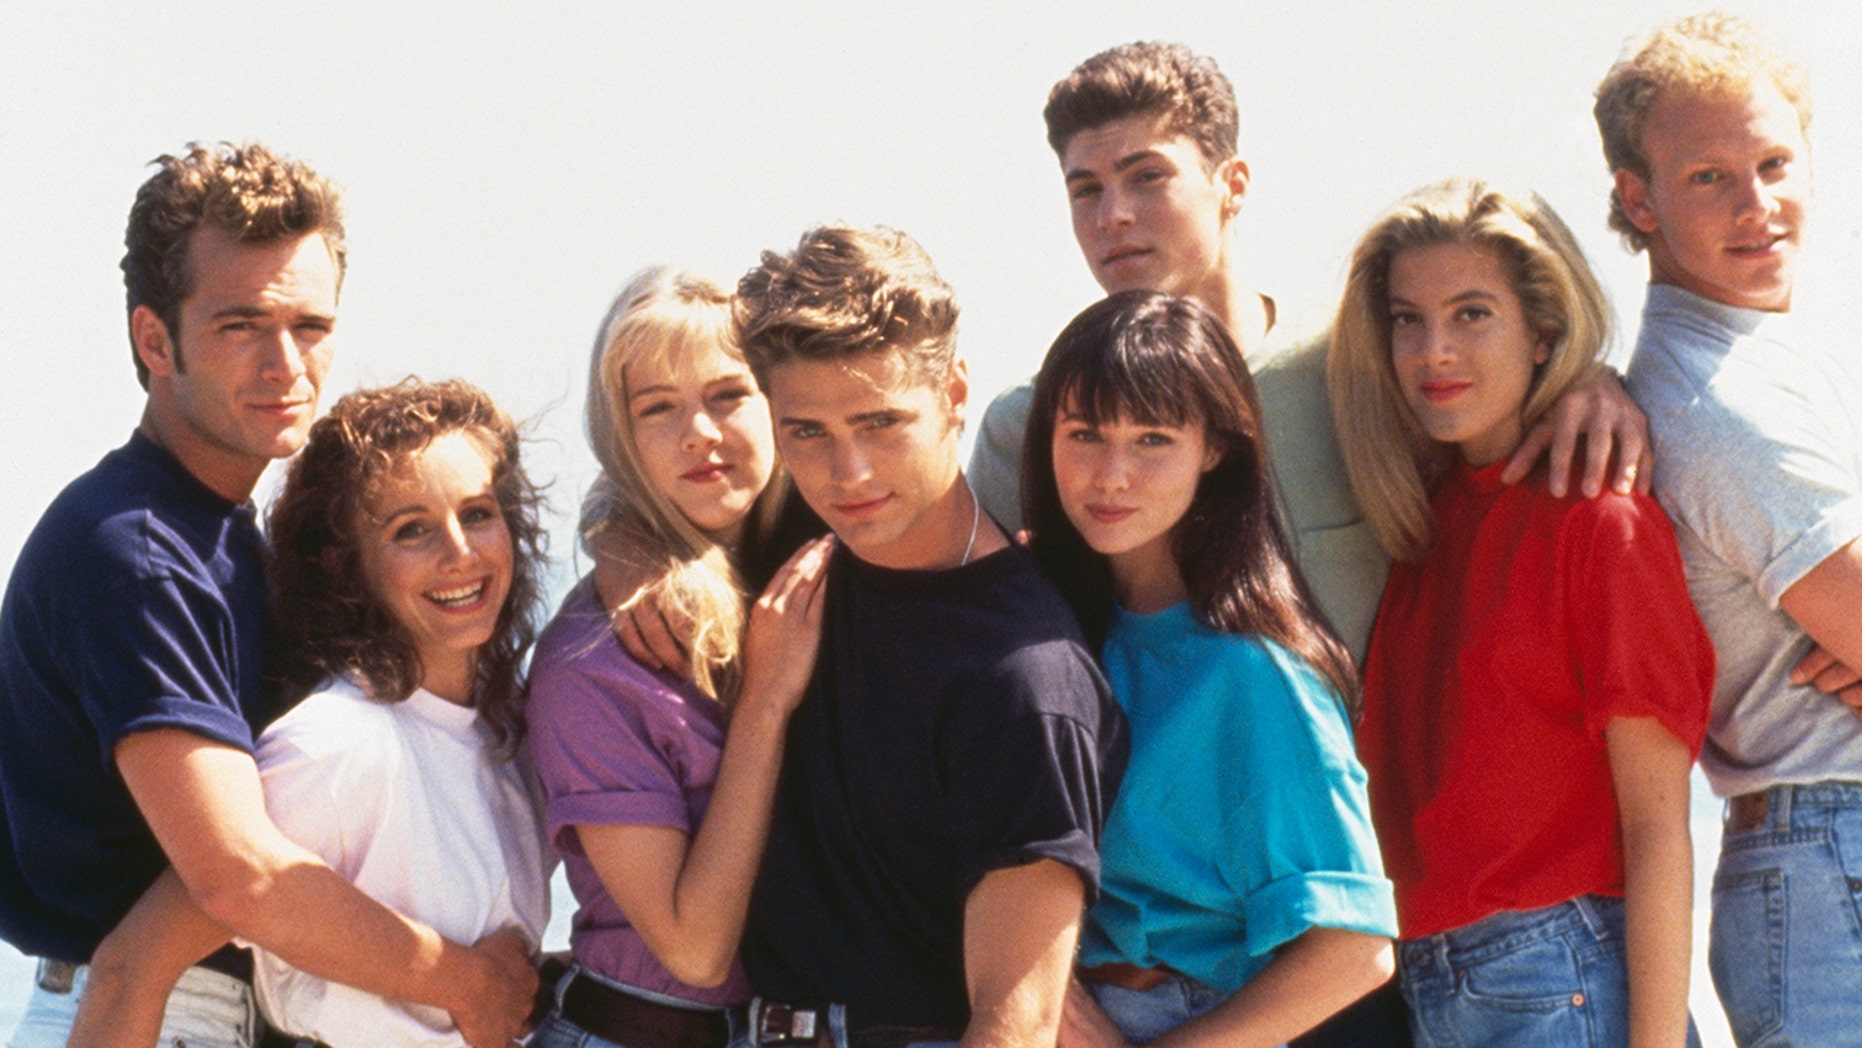 """Beverly Hills 90210"" was a pioneer in its examination of teen issues such as love, sex, date rape, drug abuse, alcoholism, eating disorders, teen pregnancy, and many more. It sparked several spin-offs and made its young stars huge in Hollywood even today."